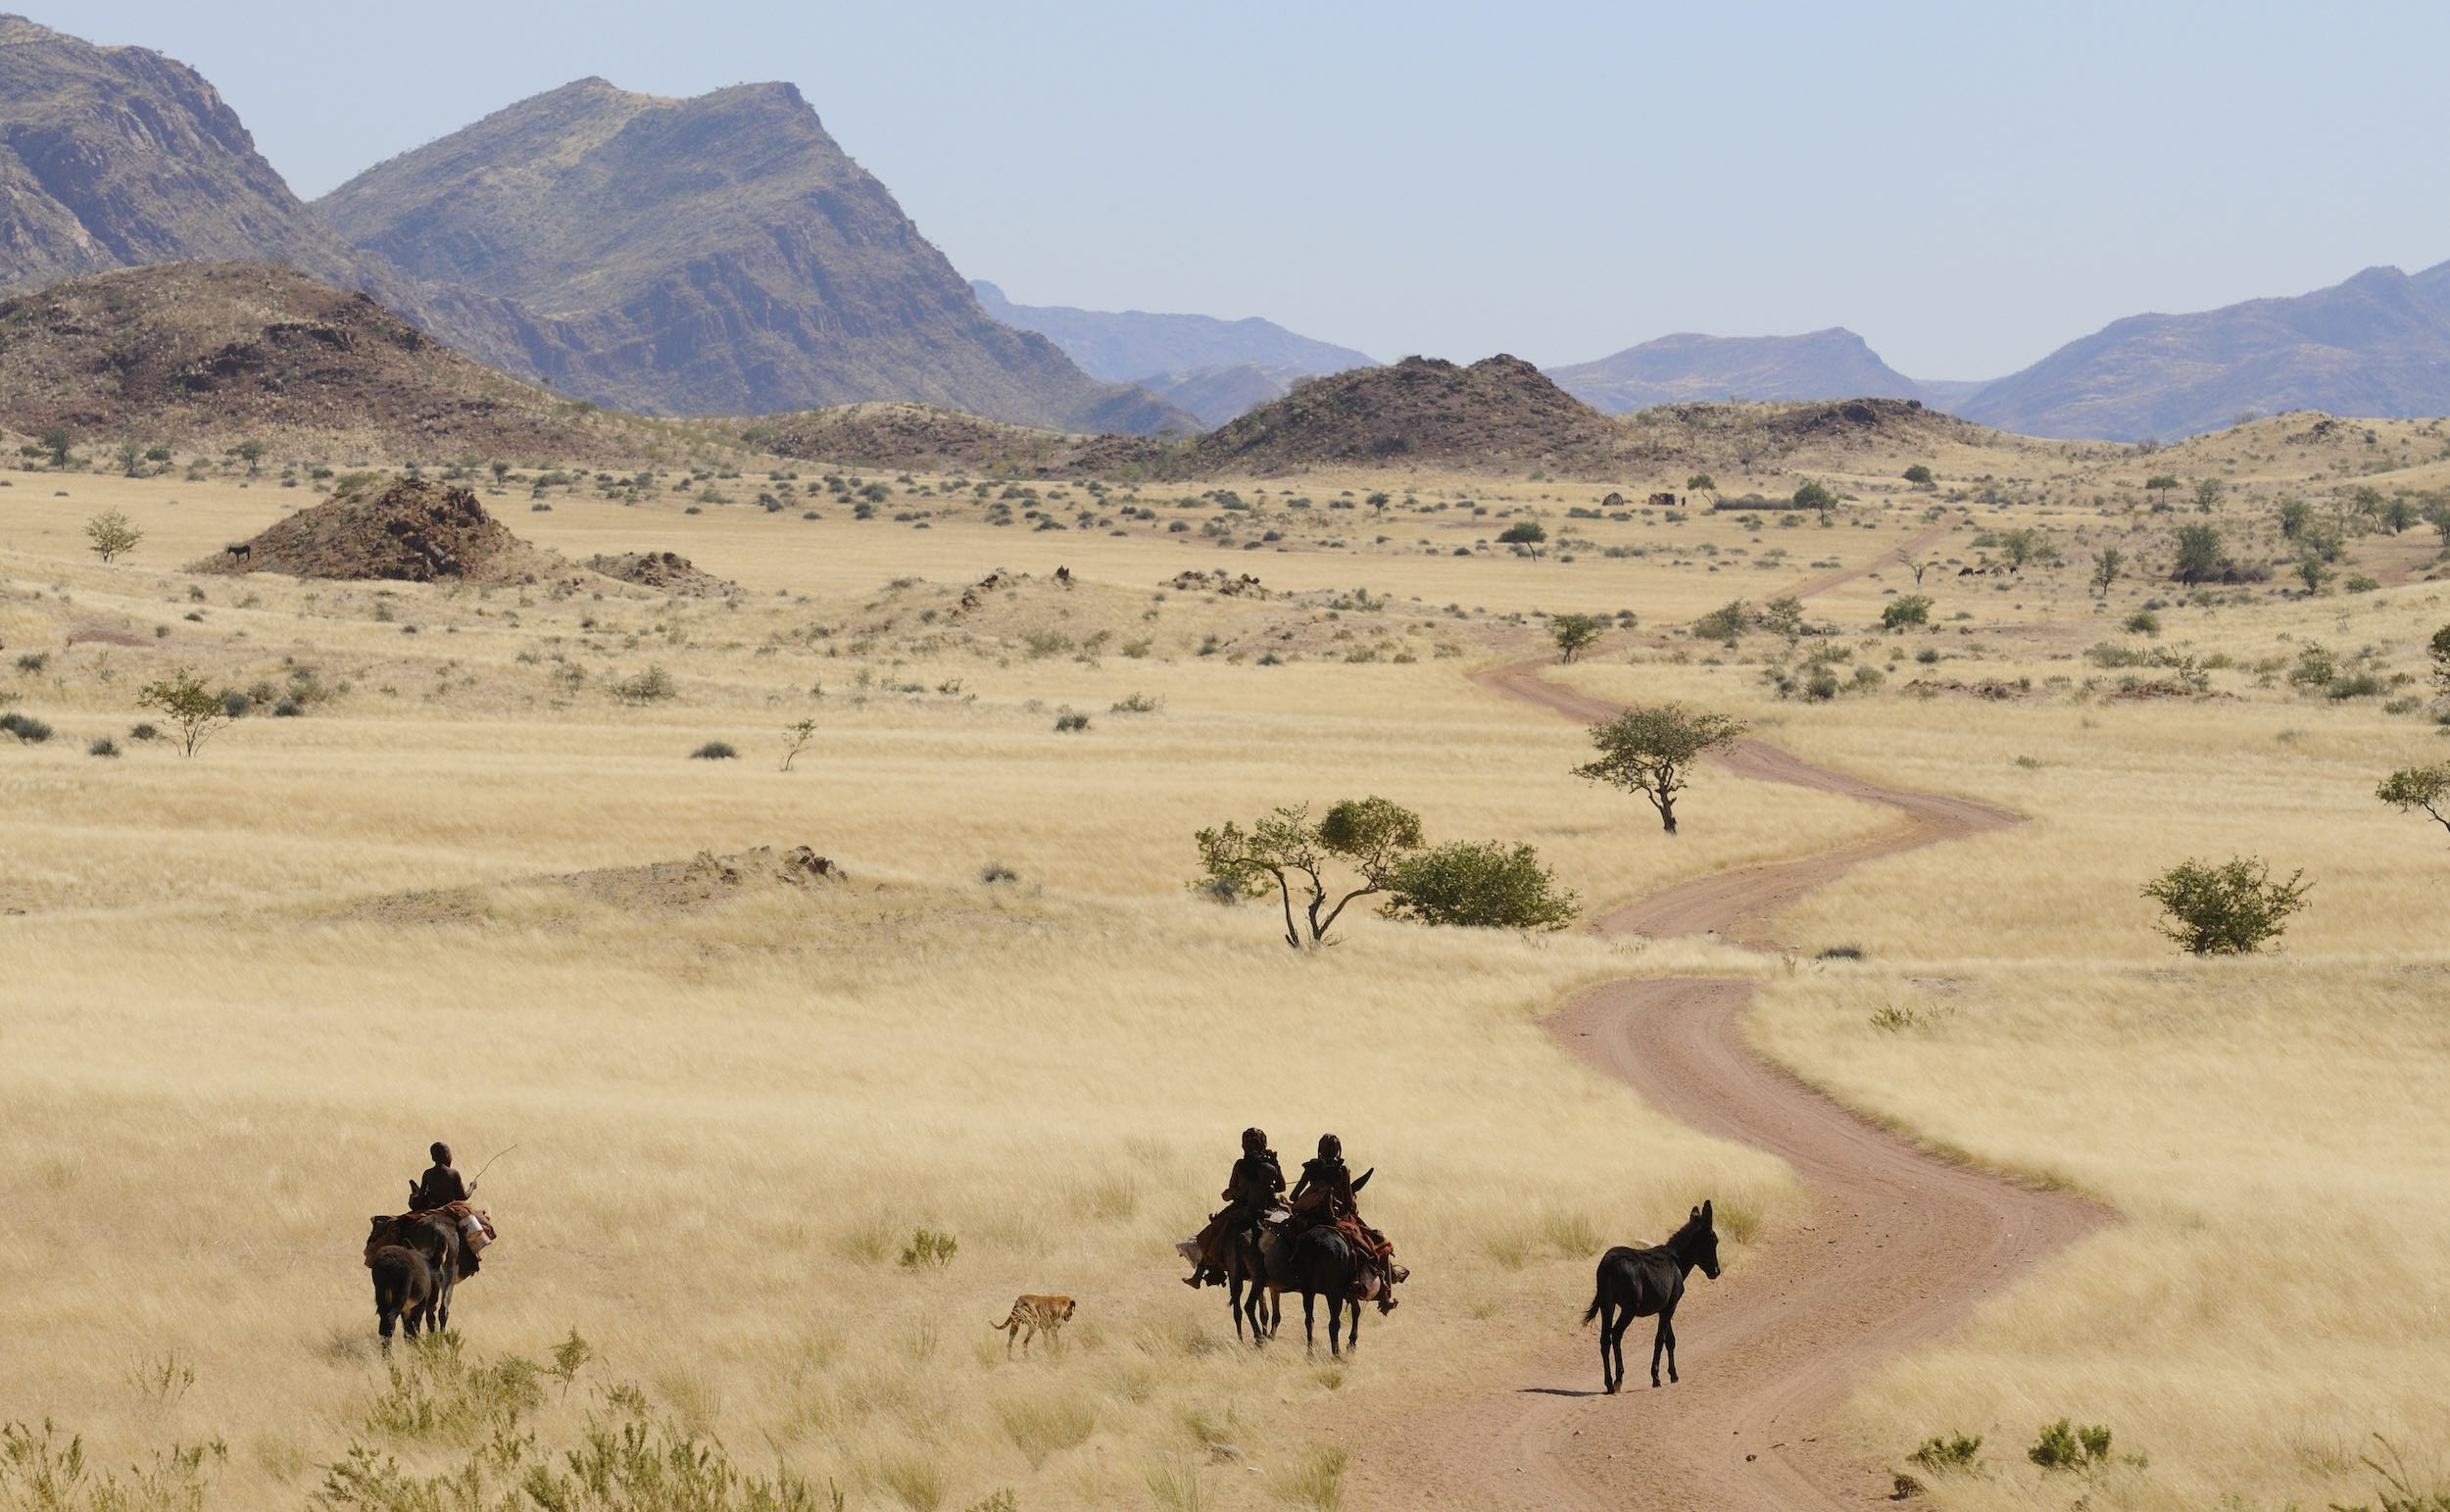 Local people riding through stunning Namibian scenary.